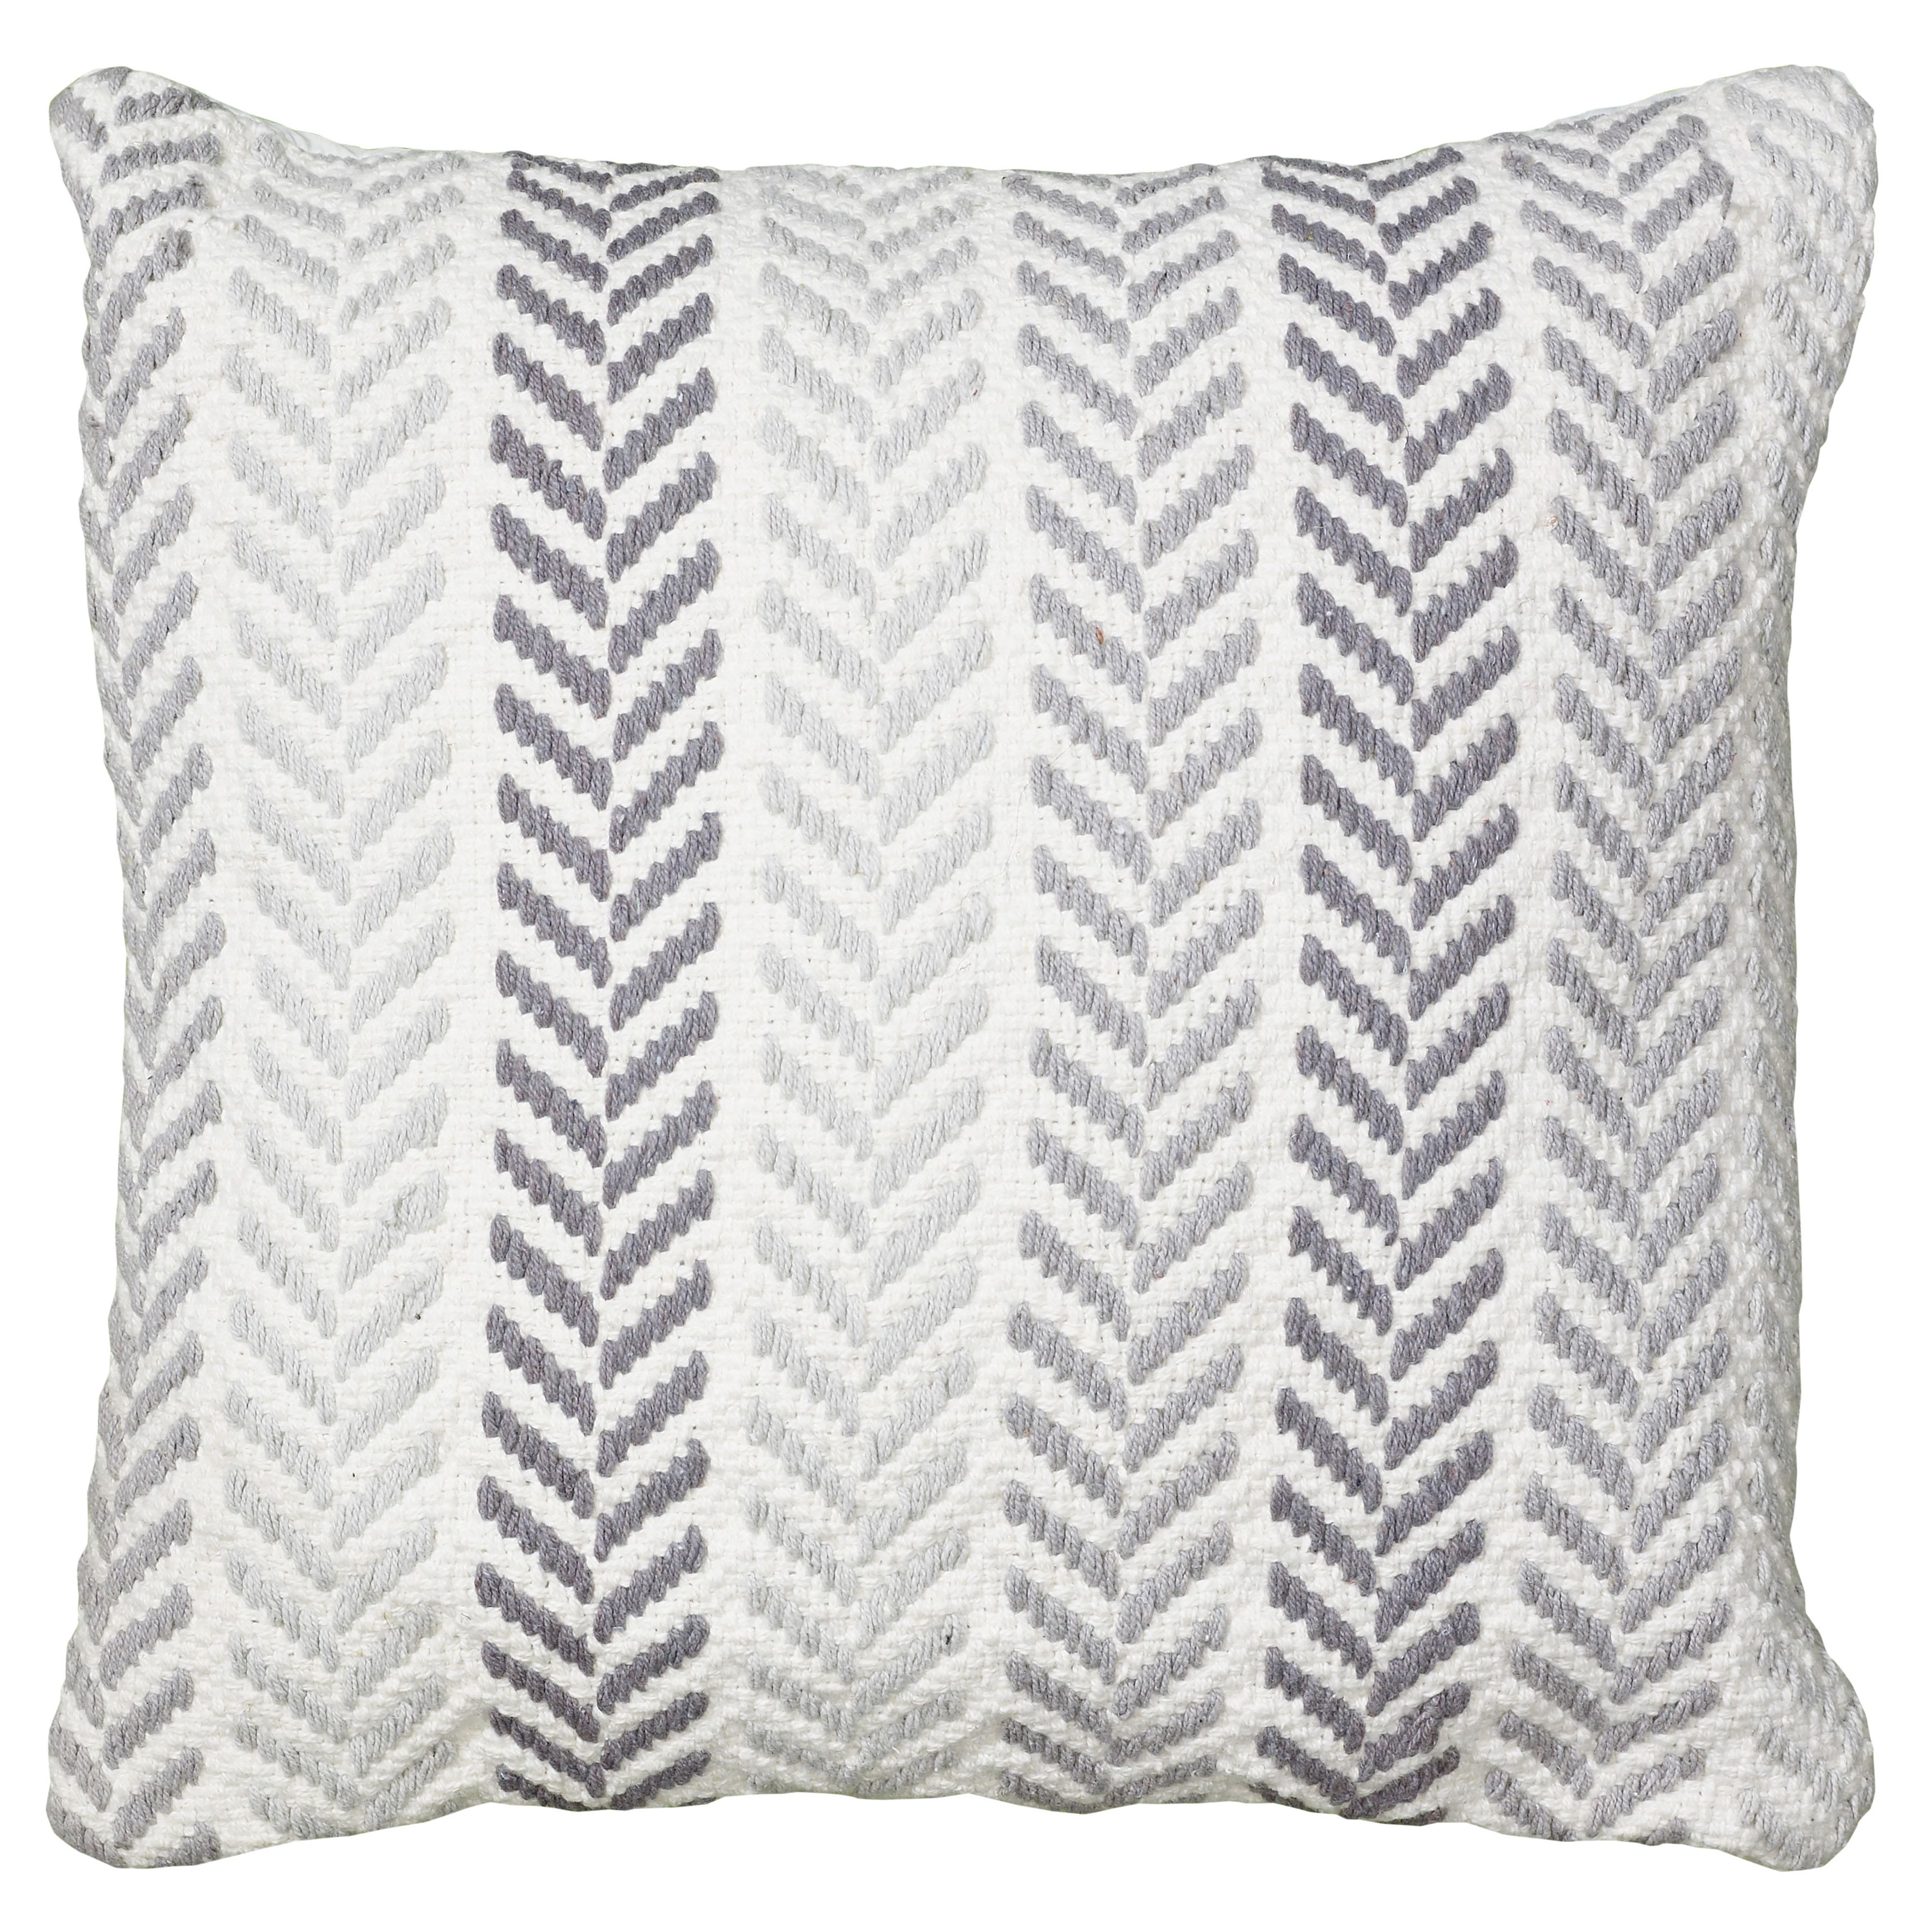 decorative blue floral and by jgreg for sofa gray throws pillow accent living room best pillows cushions teal throw grey